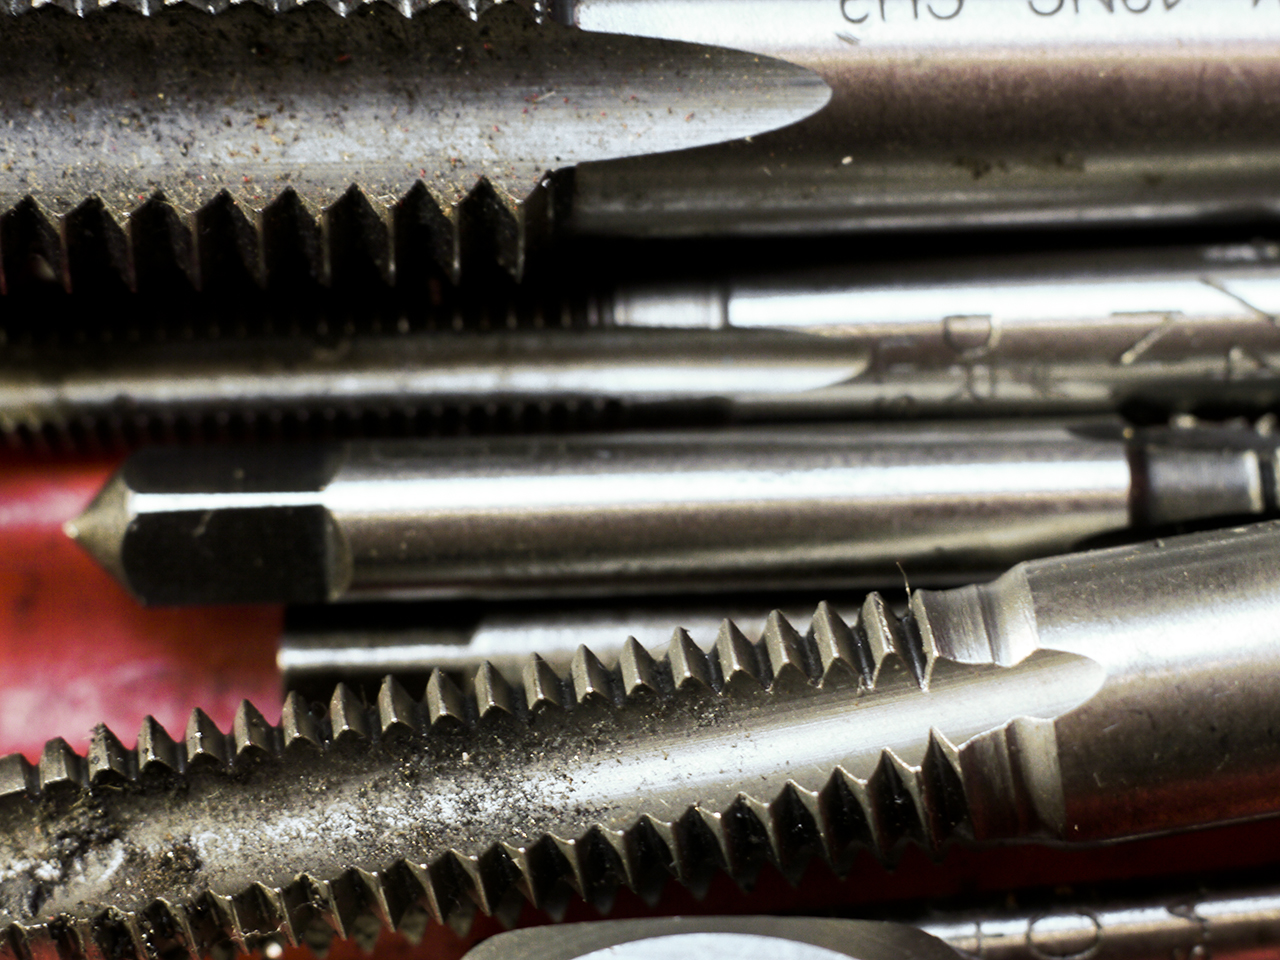 A group of taps. These tools are used to cut threads in holes.